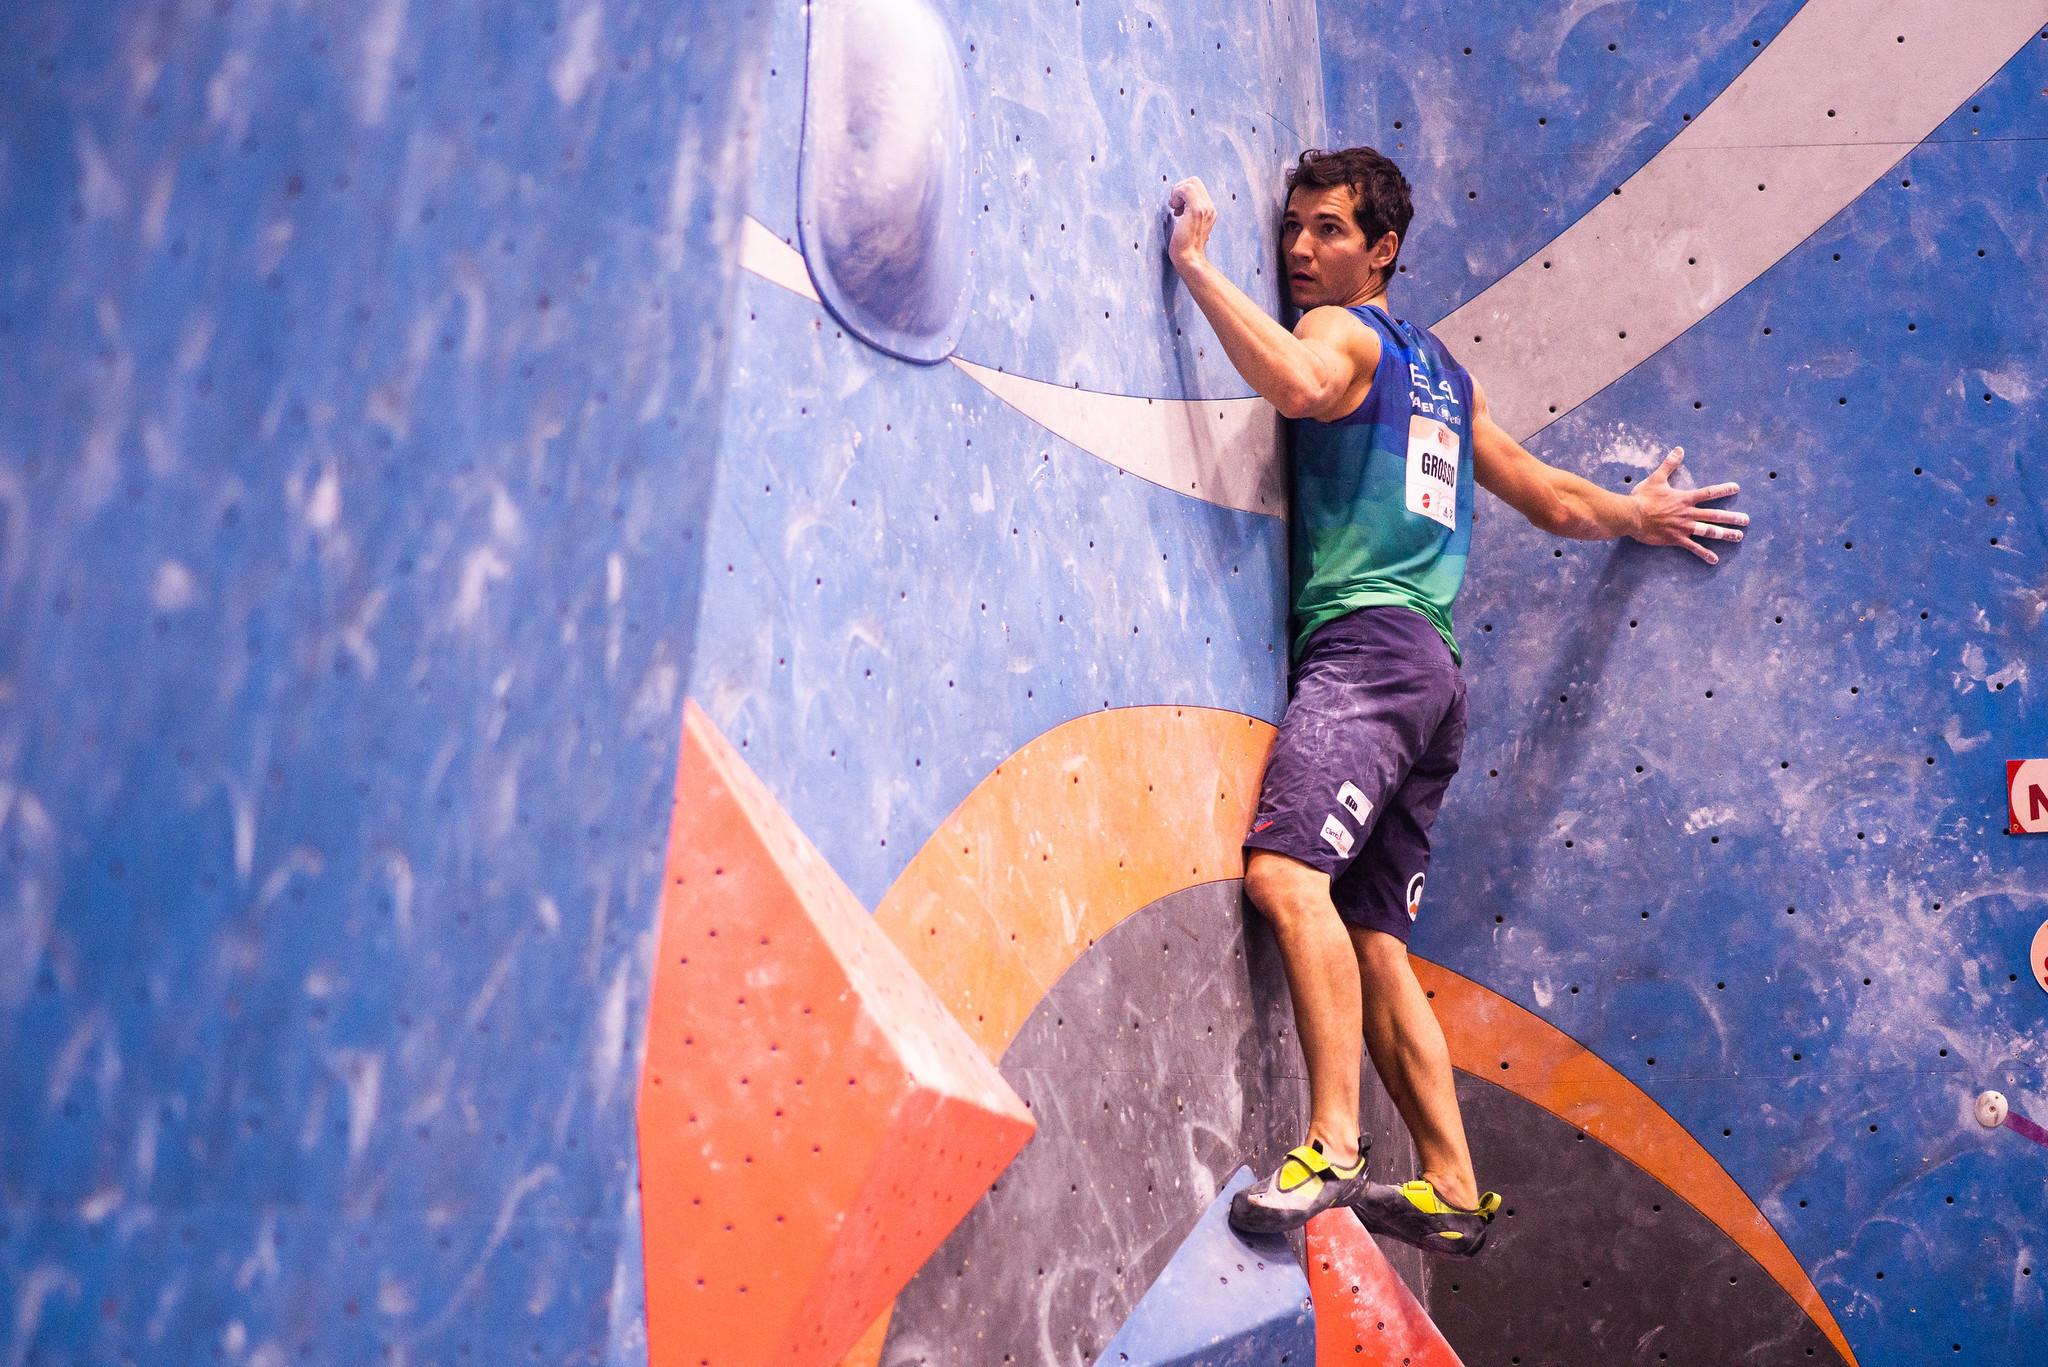 IFSC publishes rule amendments to take next step in return to competition